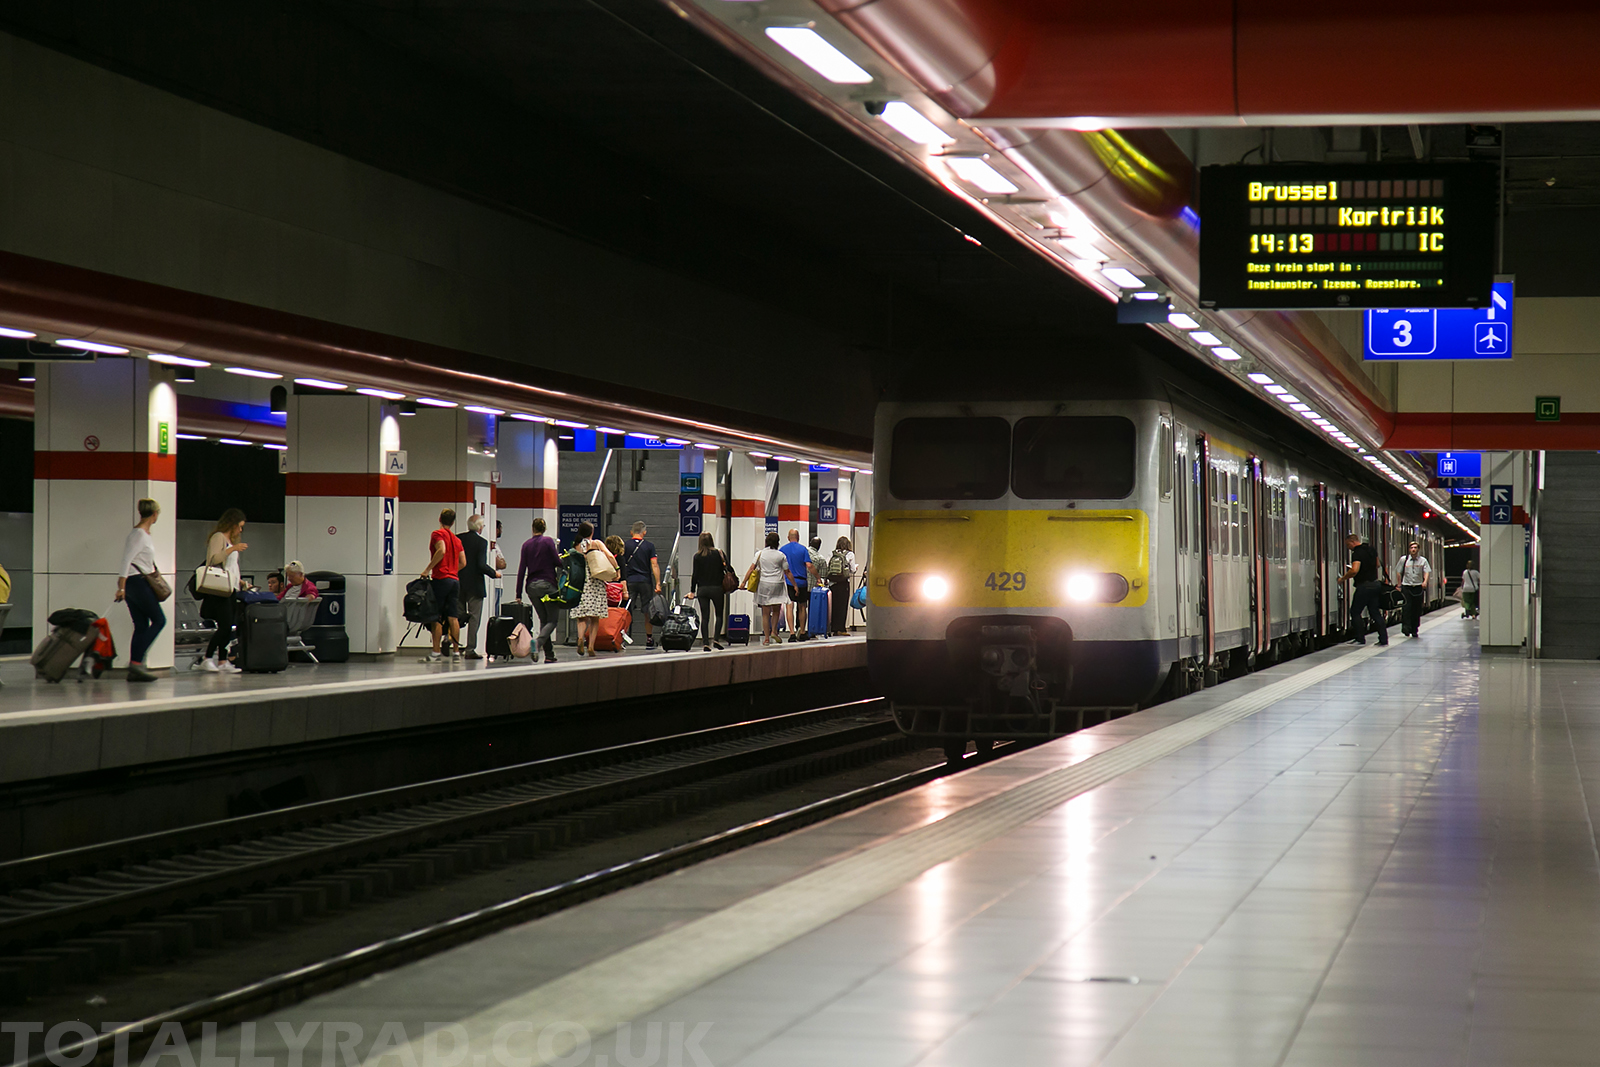 Brussels Airport Station, train arrival